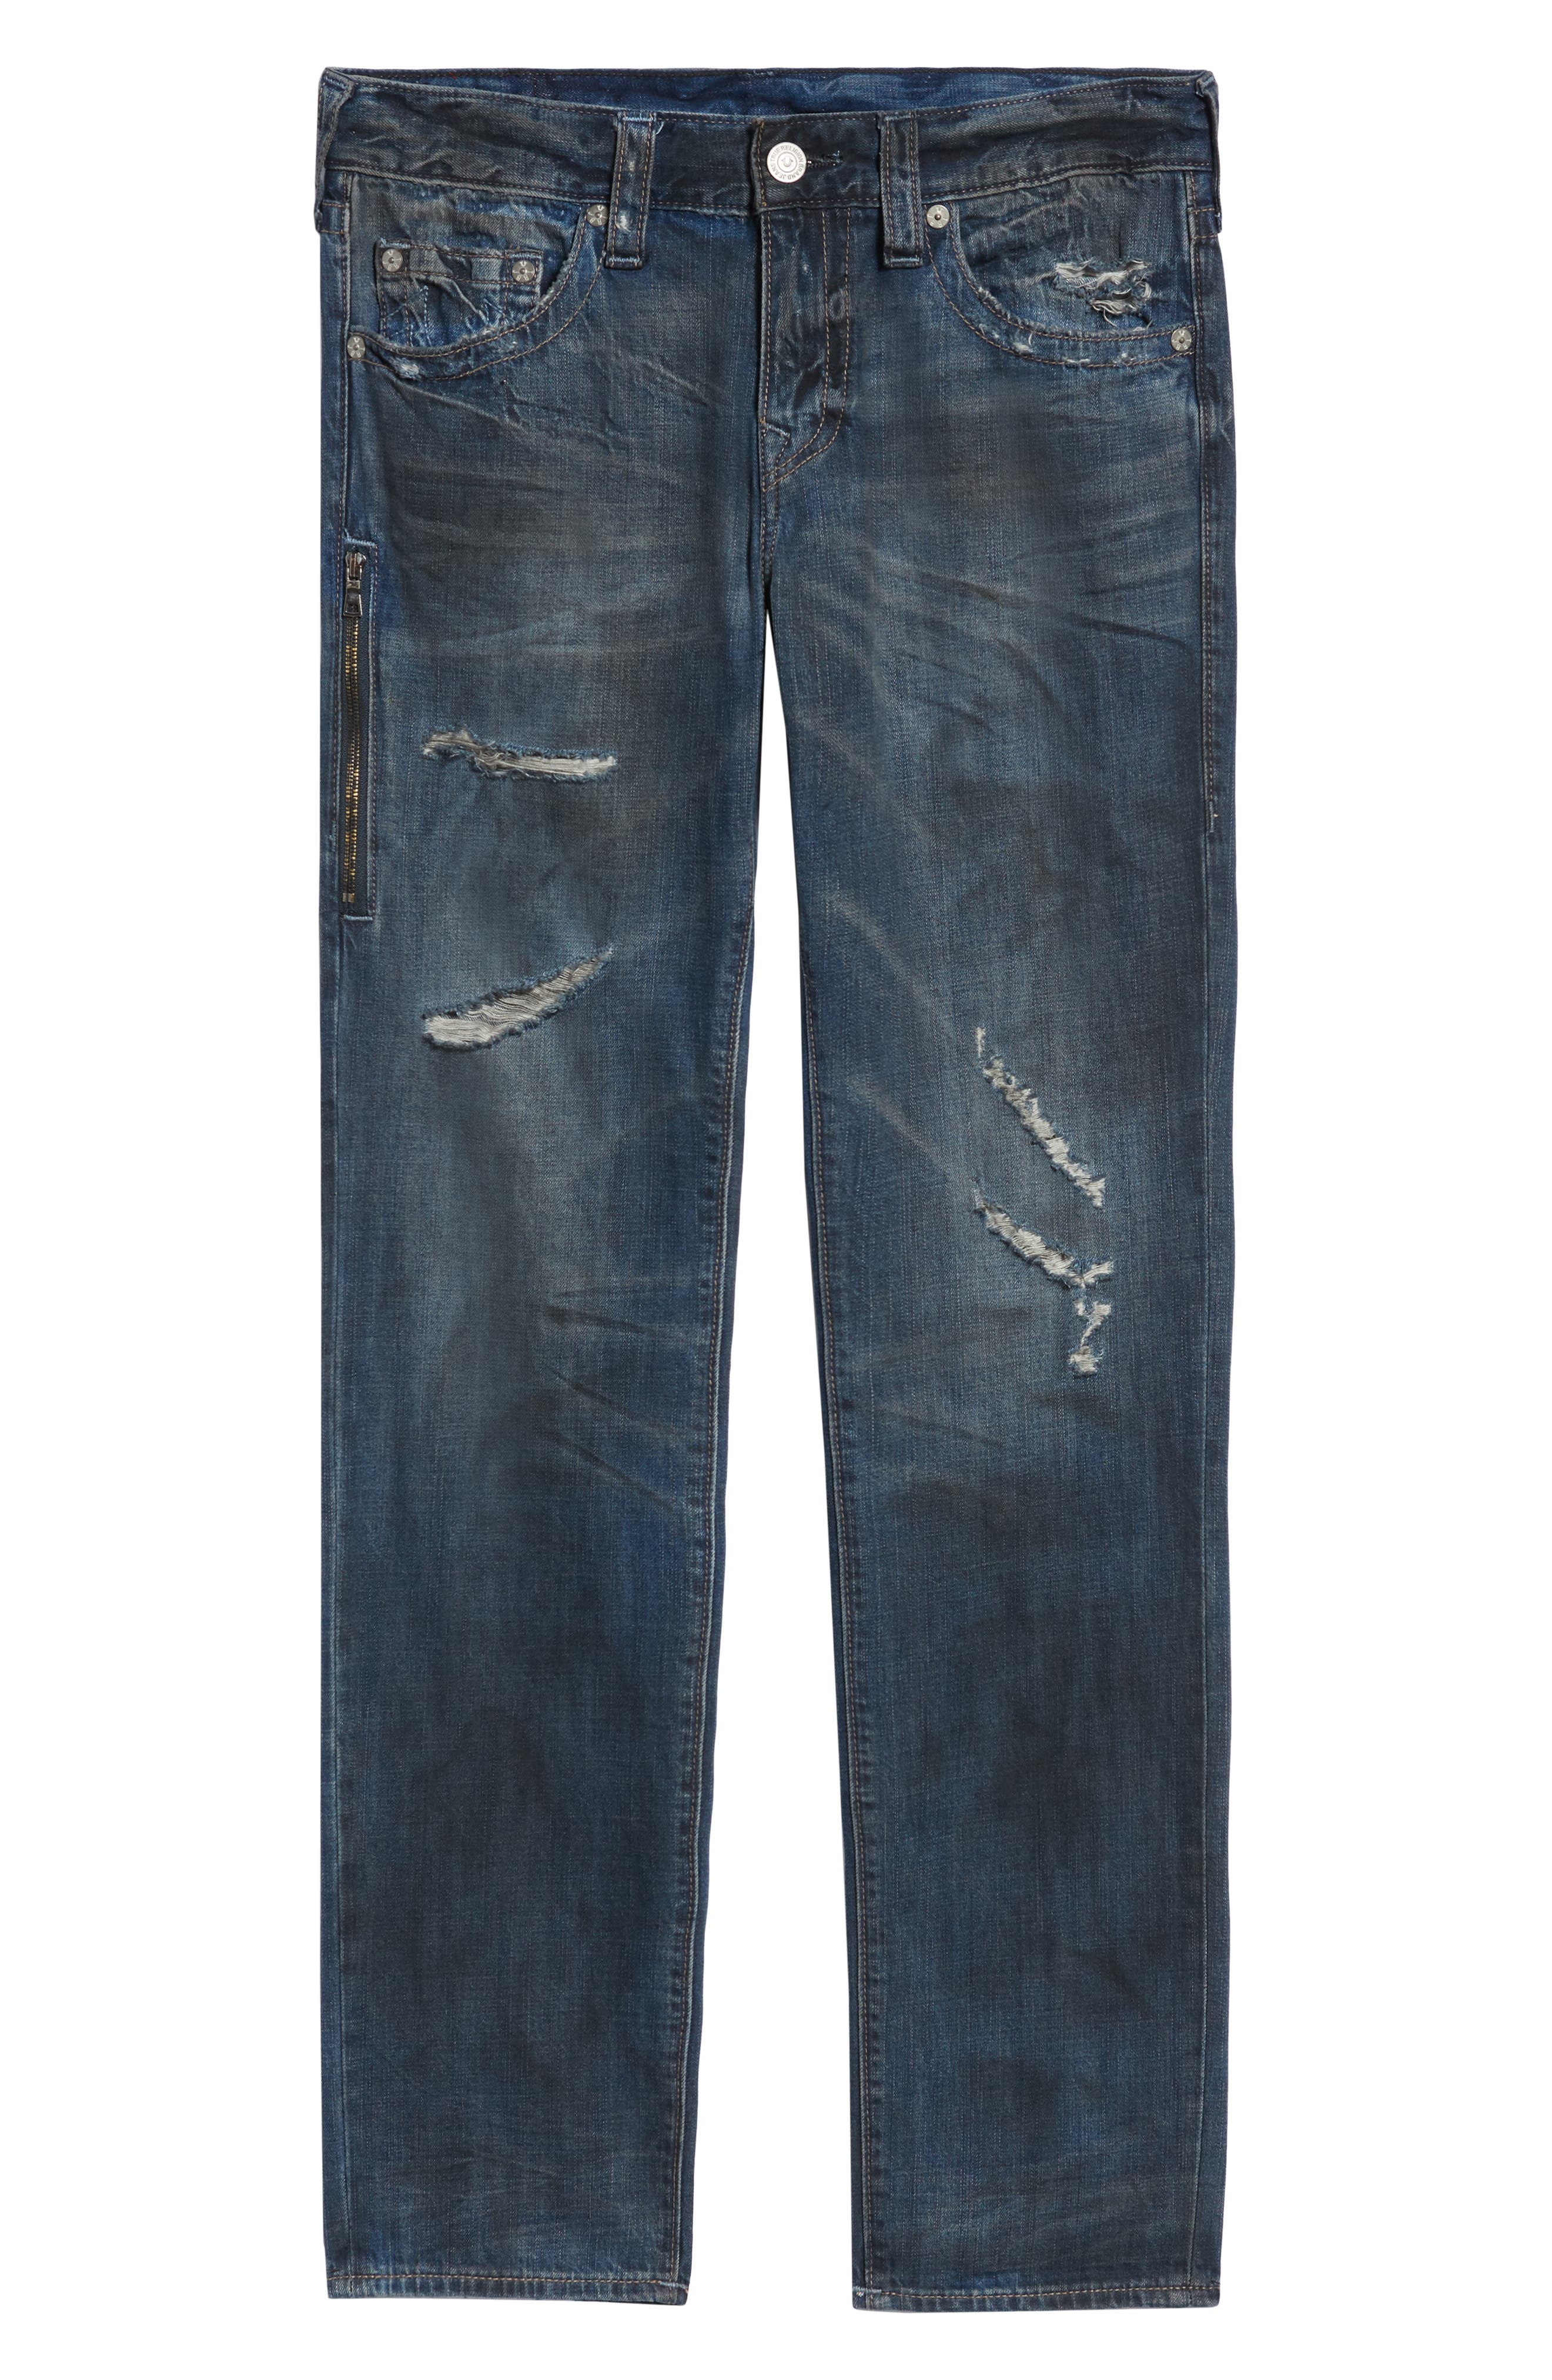 Rocco Distressed Skinny Fit Jeans,                             Alternate thumbnail 6, color,                             MIDNIGHT STORM